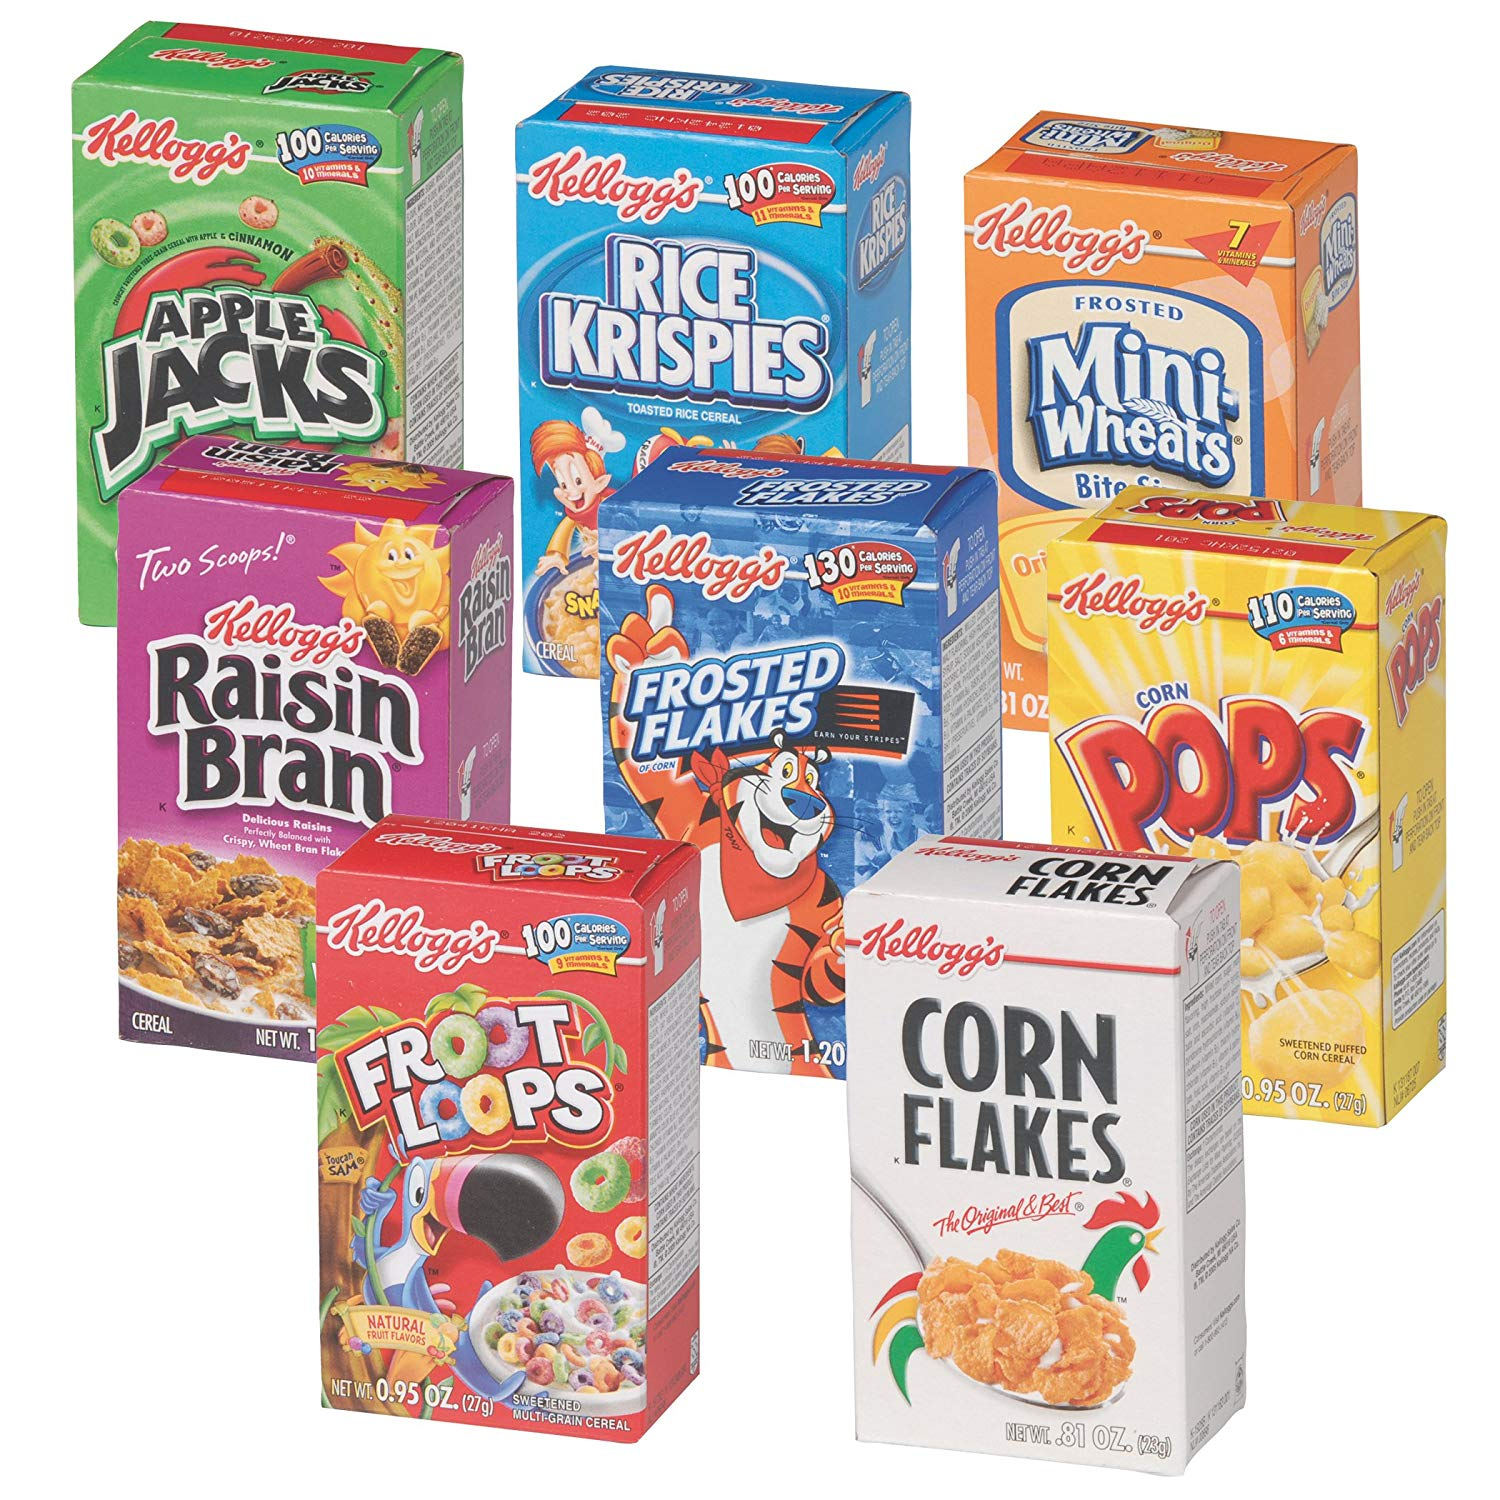 Cereal clipart cold cereal. Amazon com kellogg s